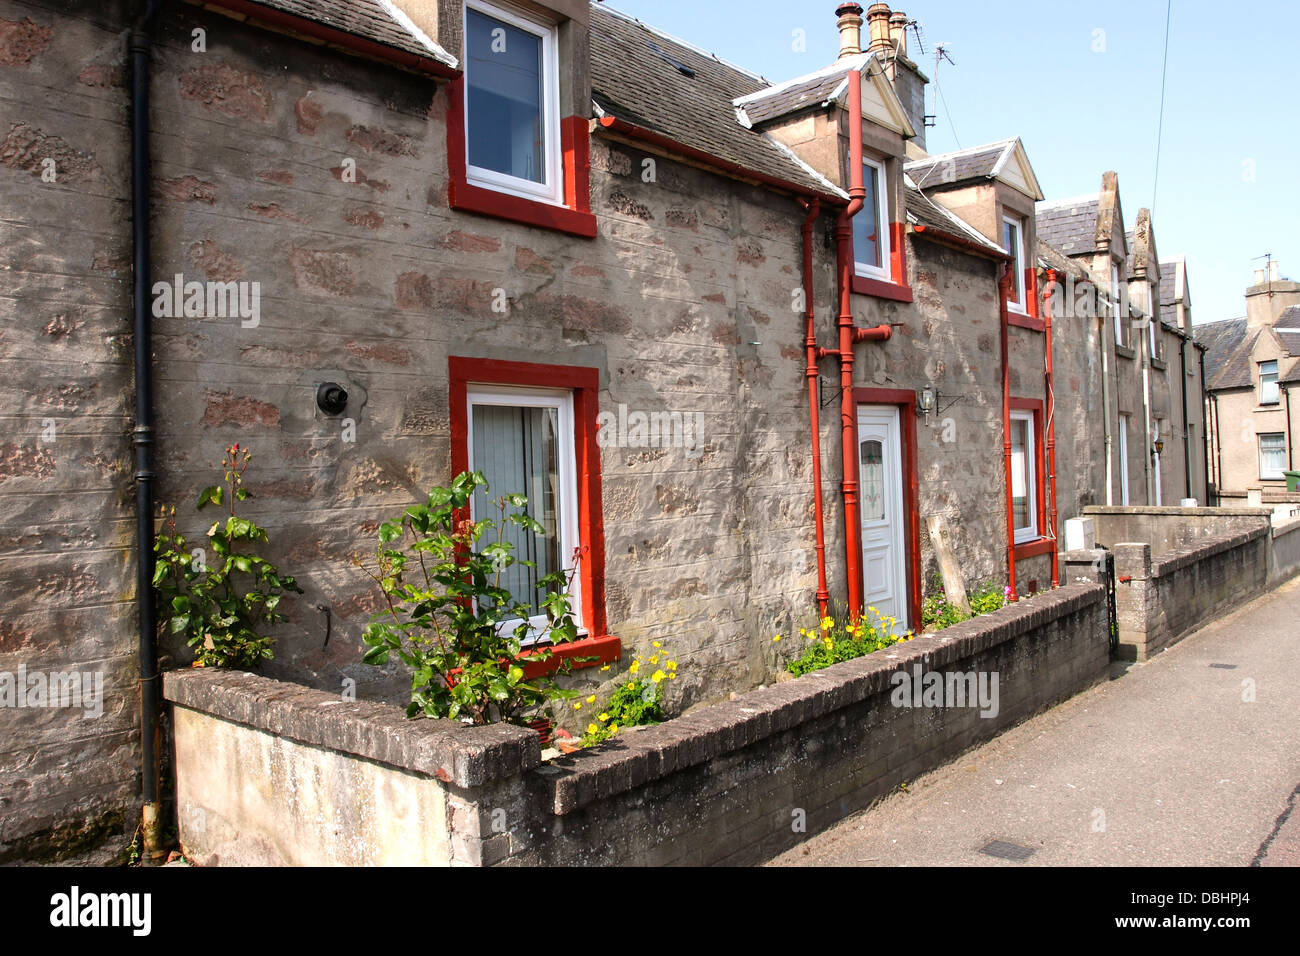 stock castle sale scotland of the village old cottages images picturesque for wiltshire uk in photos thatched cottage combe cotswold photo